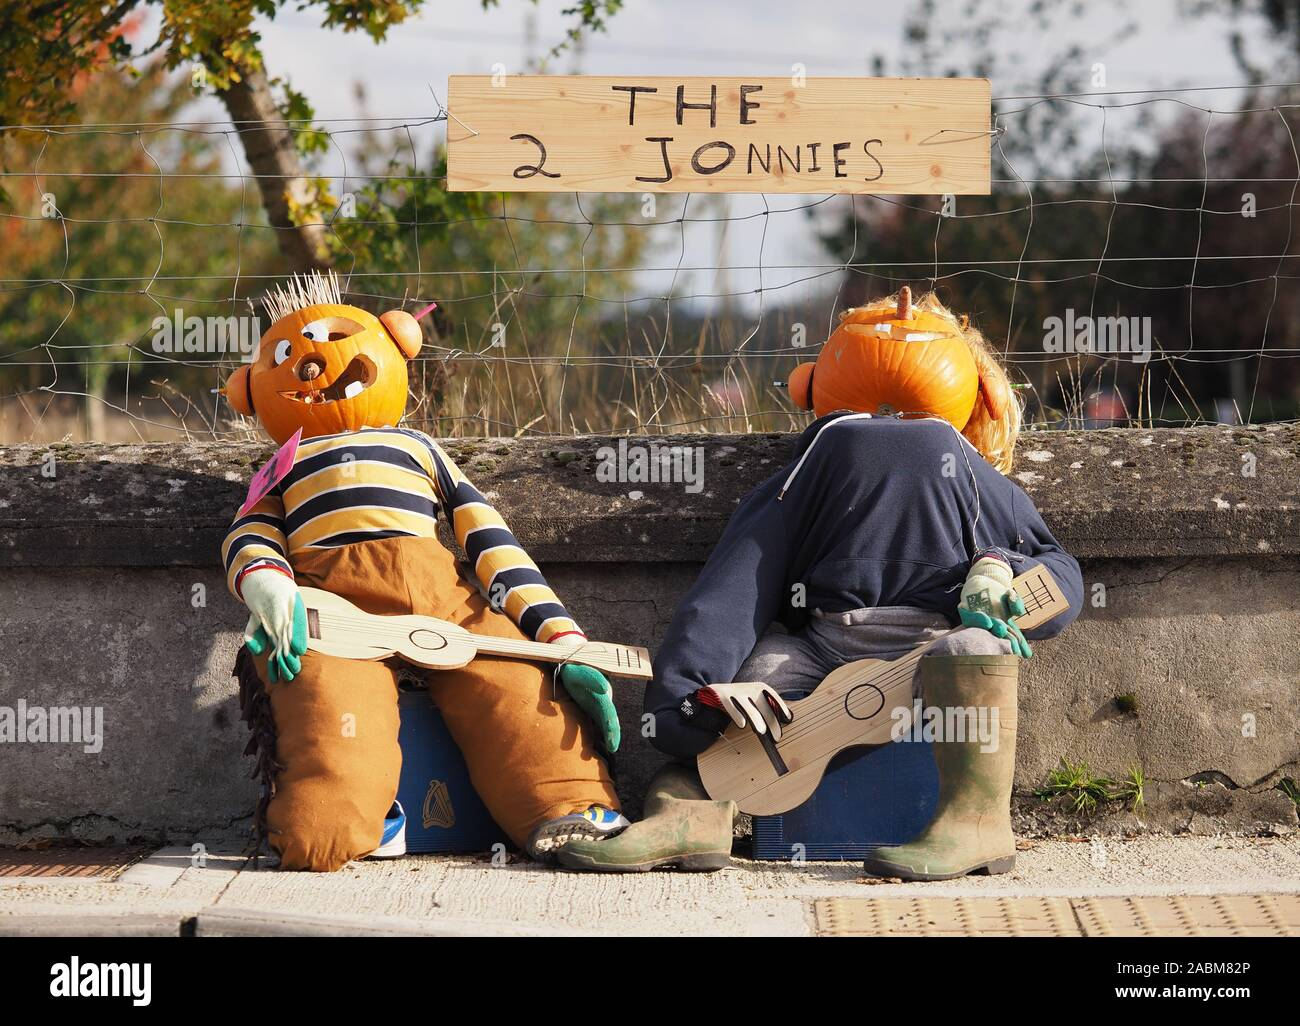 Halloween scarecrows of comedy duo 'The 2 johnnies' in New Inn, Tipperary, Ireland Stock Photo